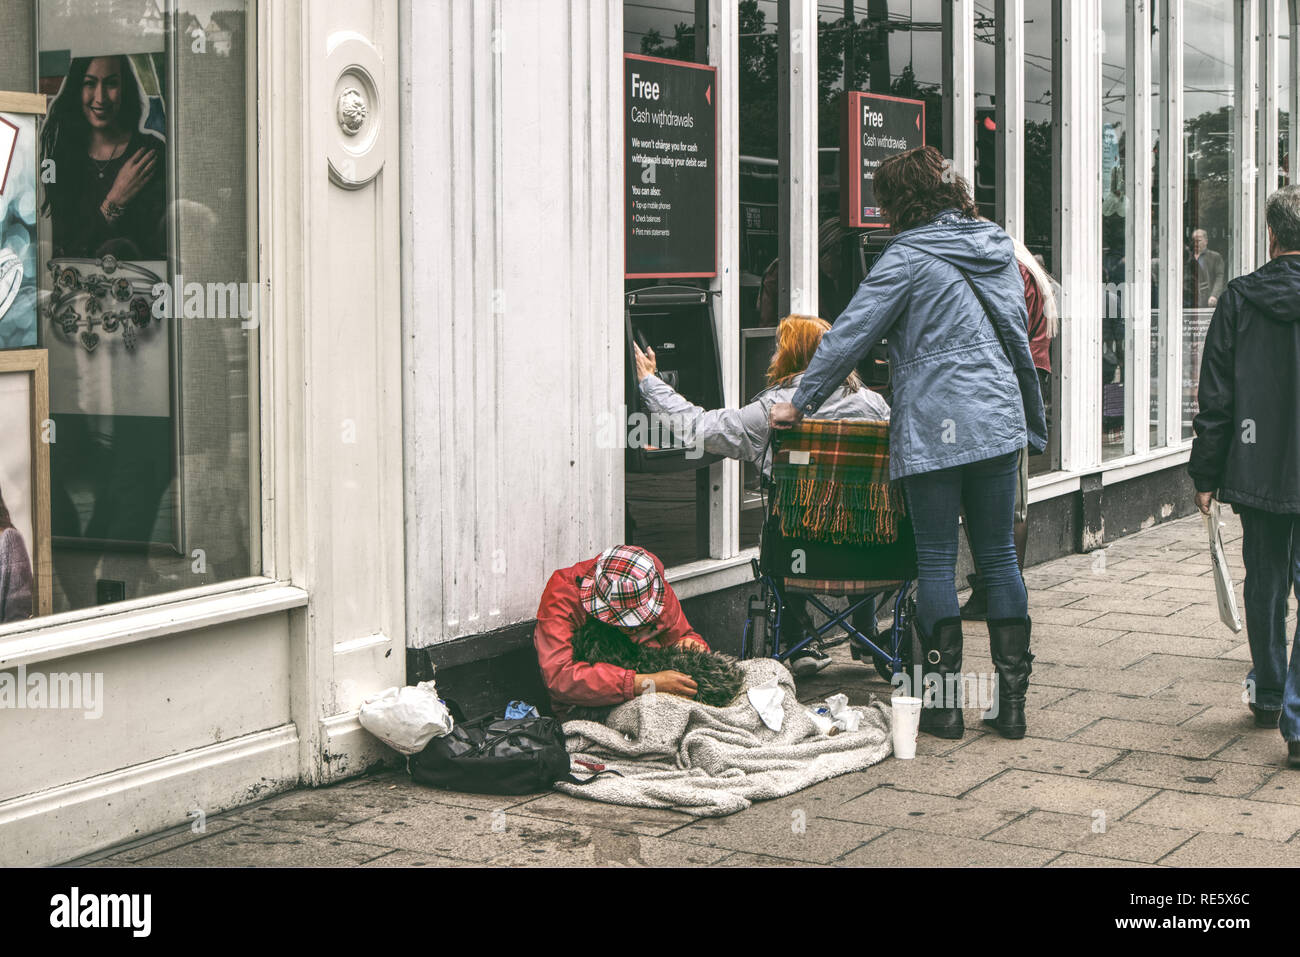 A man is begging on the street while a woman in a wheelchair is withdrawing cash on a high street in the UK - Stock Image